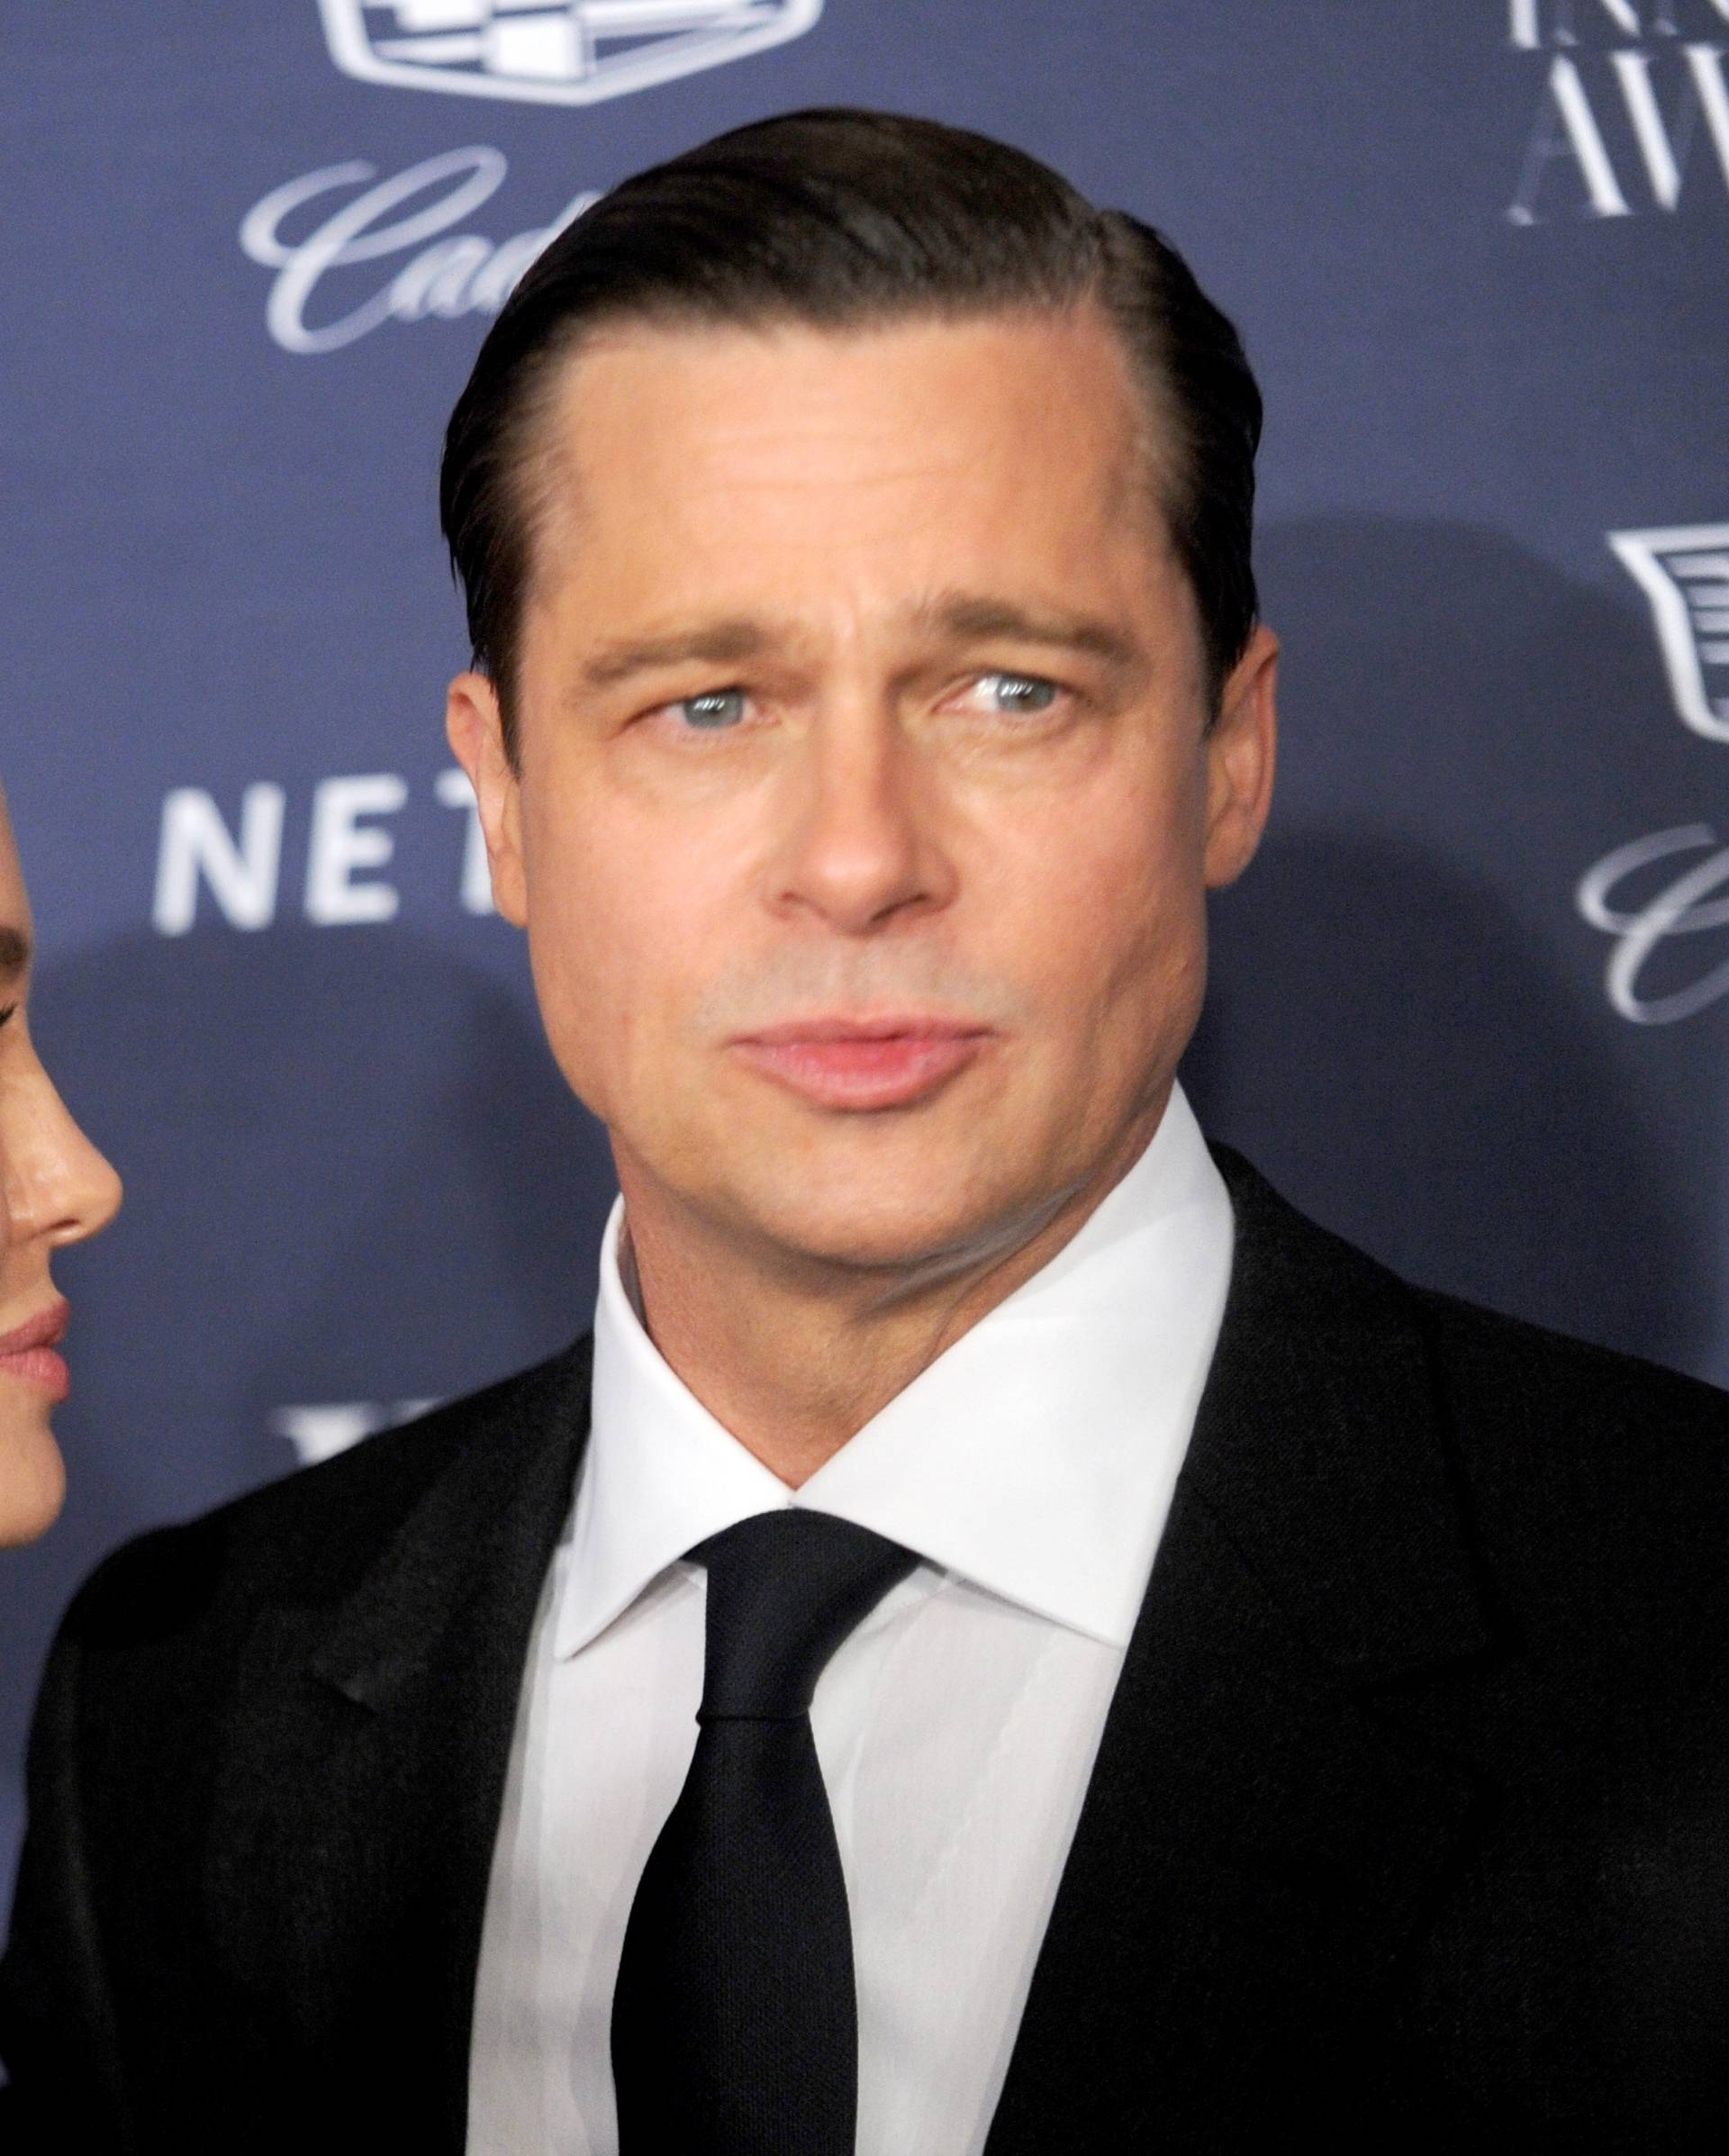 Angelina Jolie And Brad Pitt At Innovator Awards - NYC